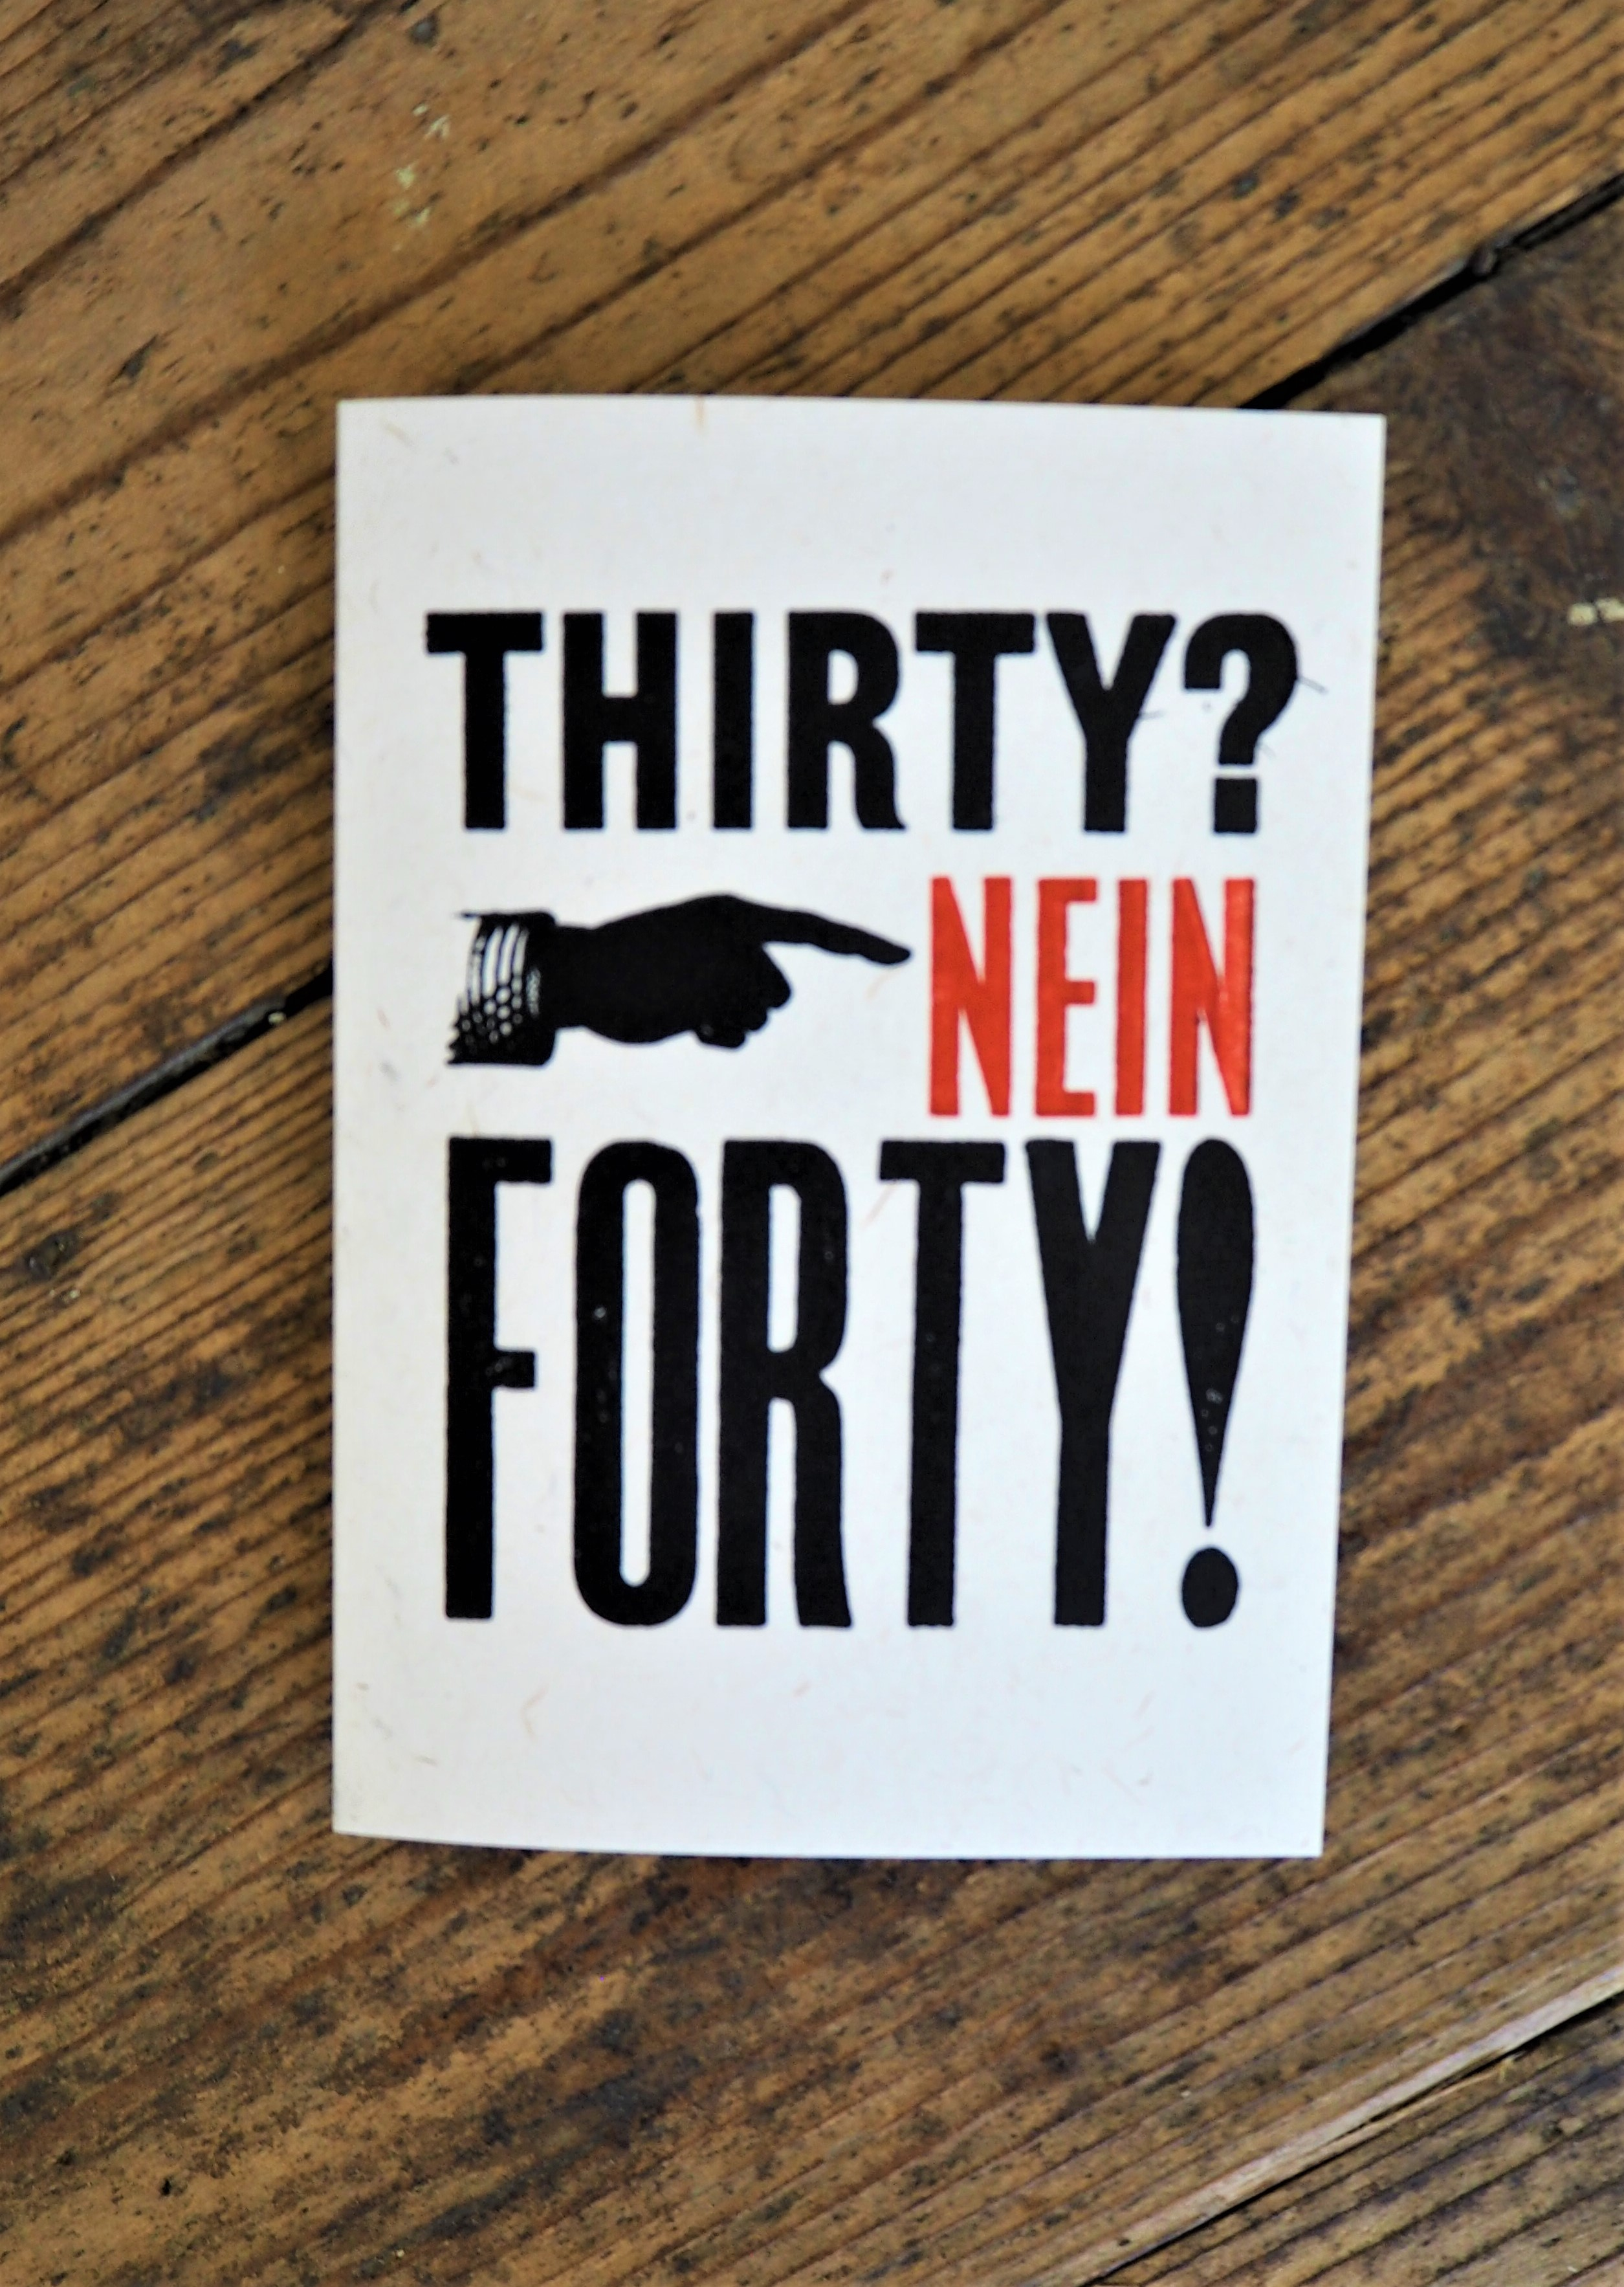 Thirty? Nein Forty! Letterpress card